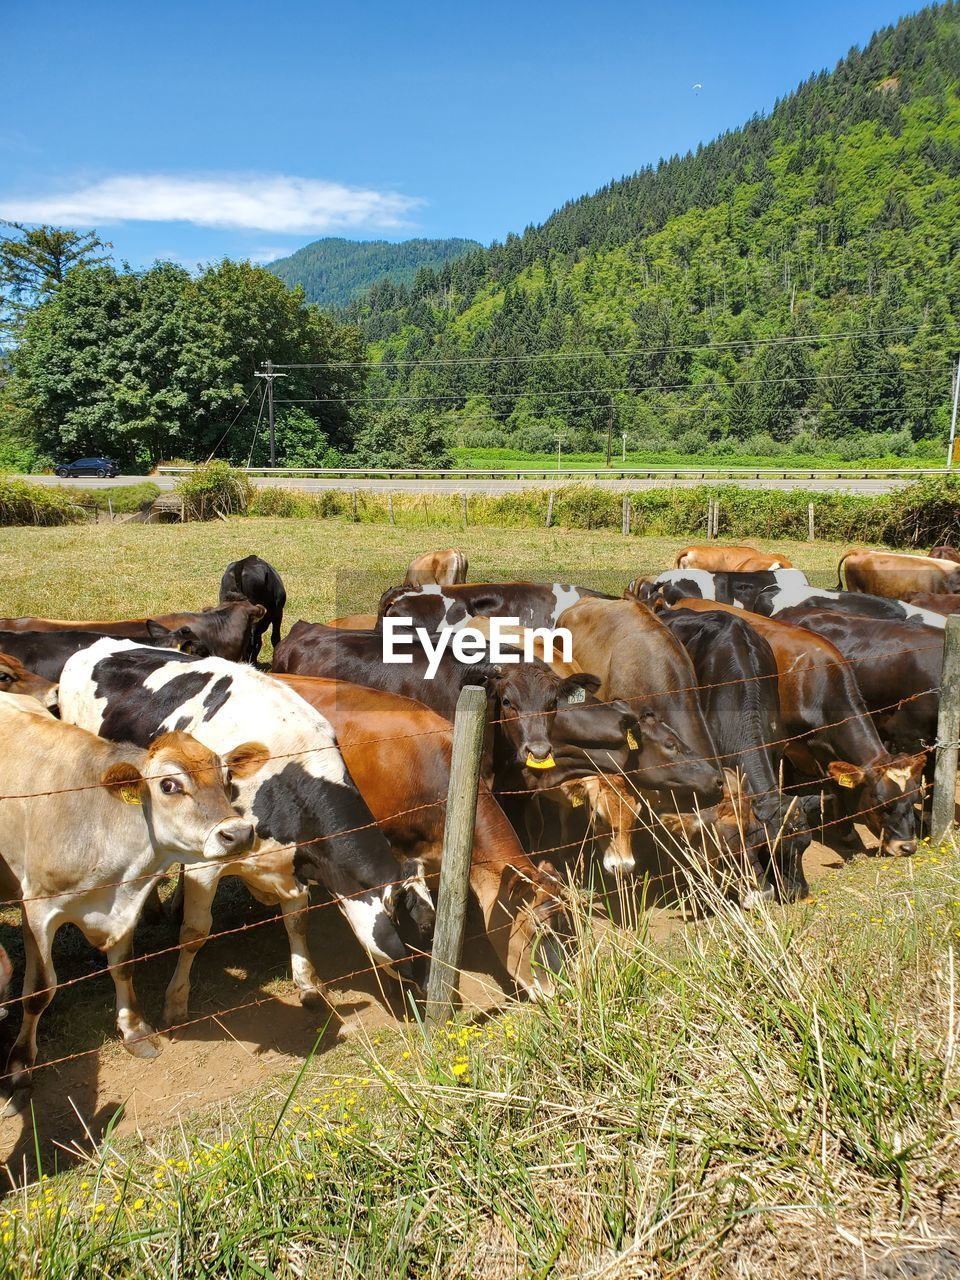 VIEW OF COWS ON FIELD